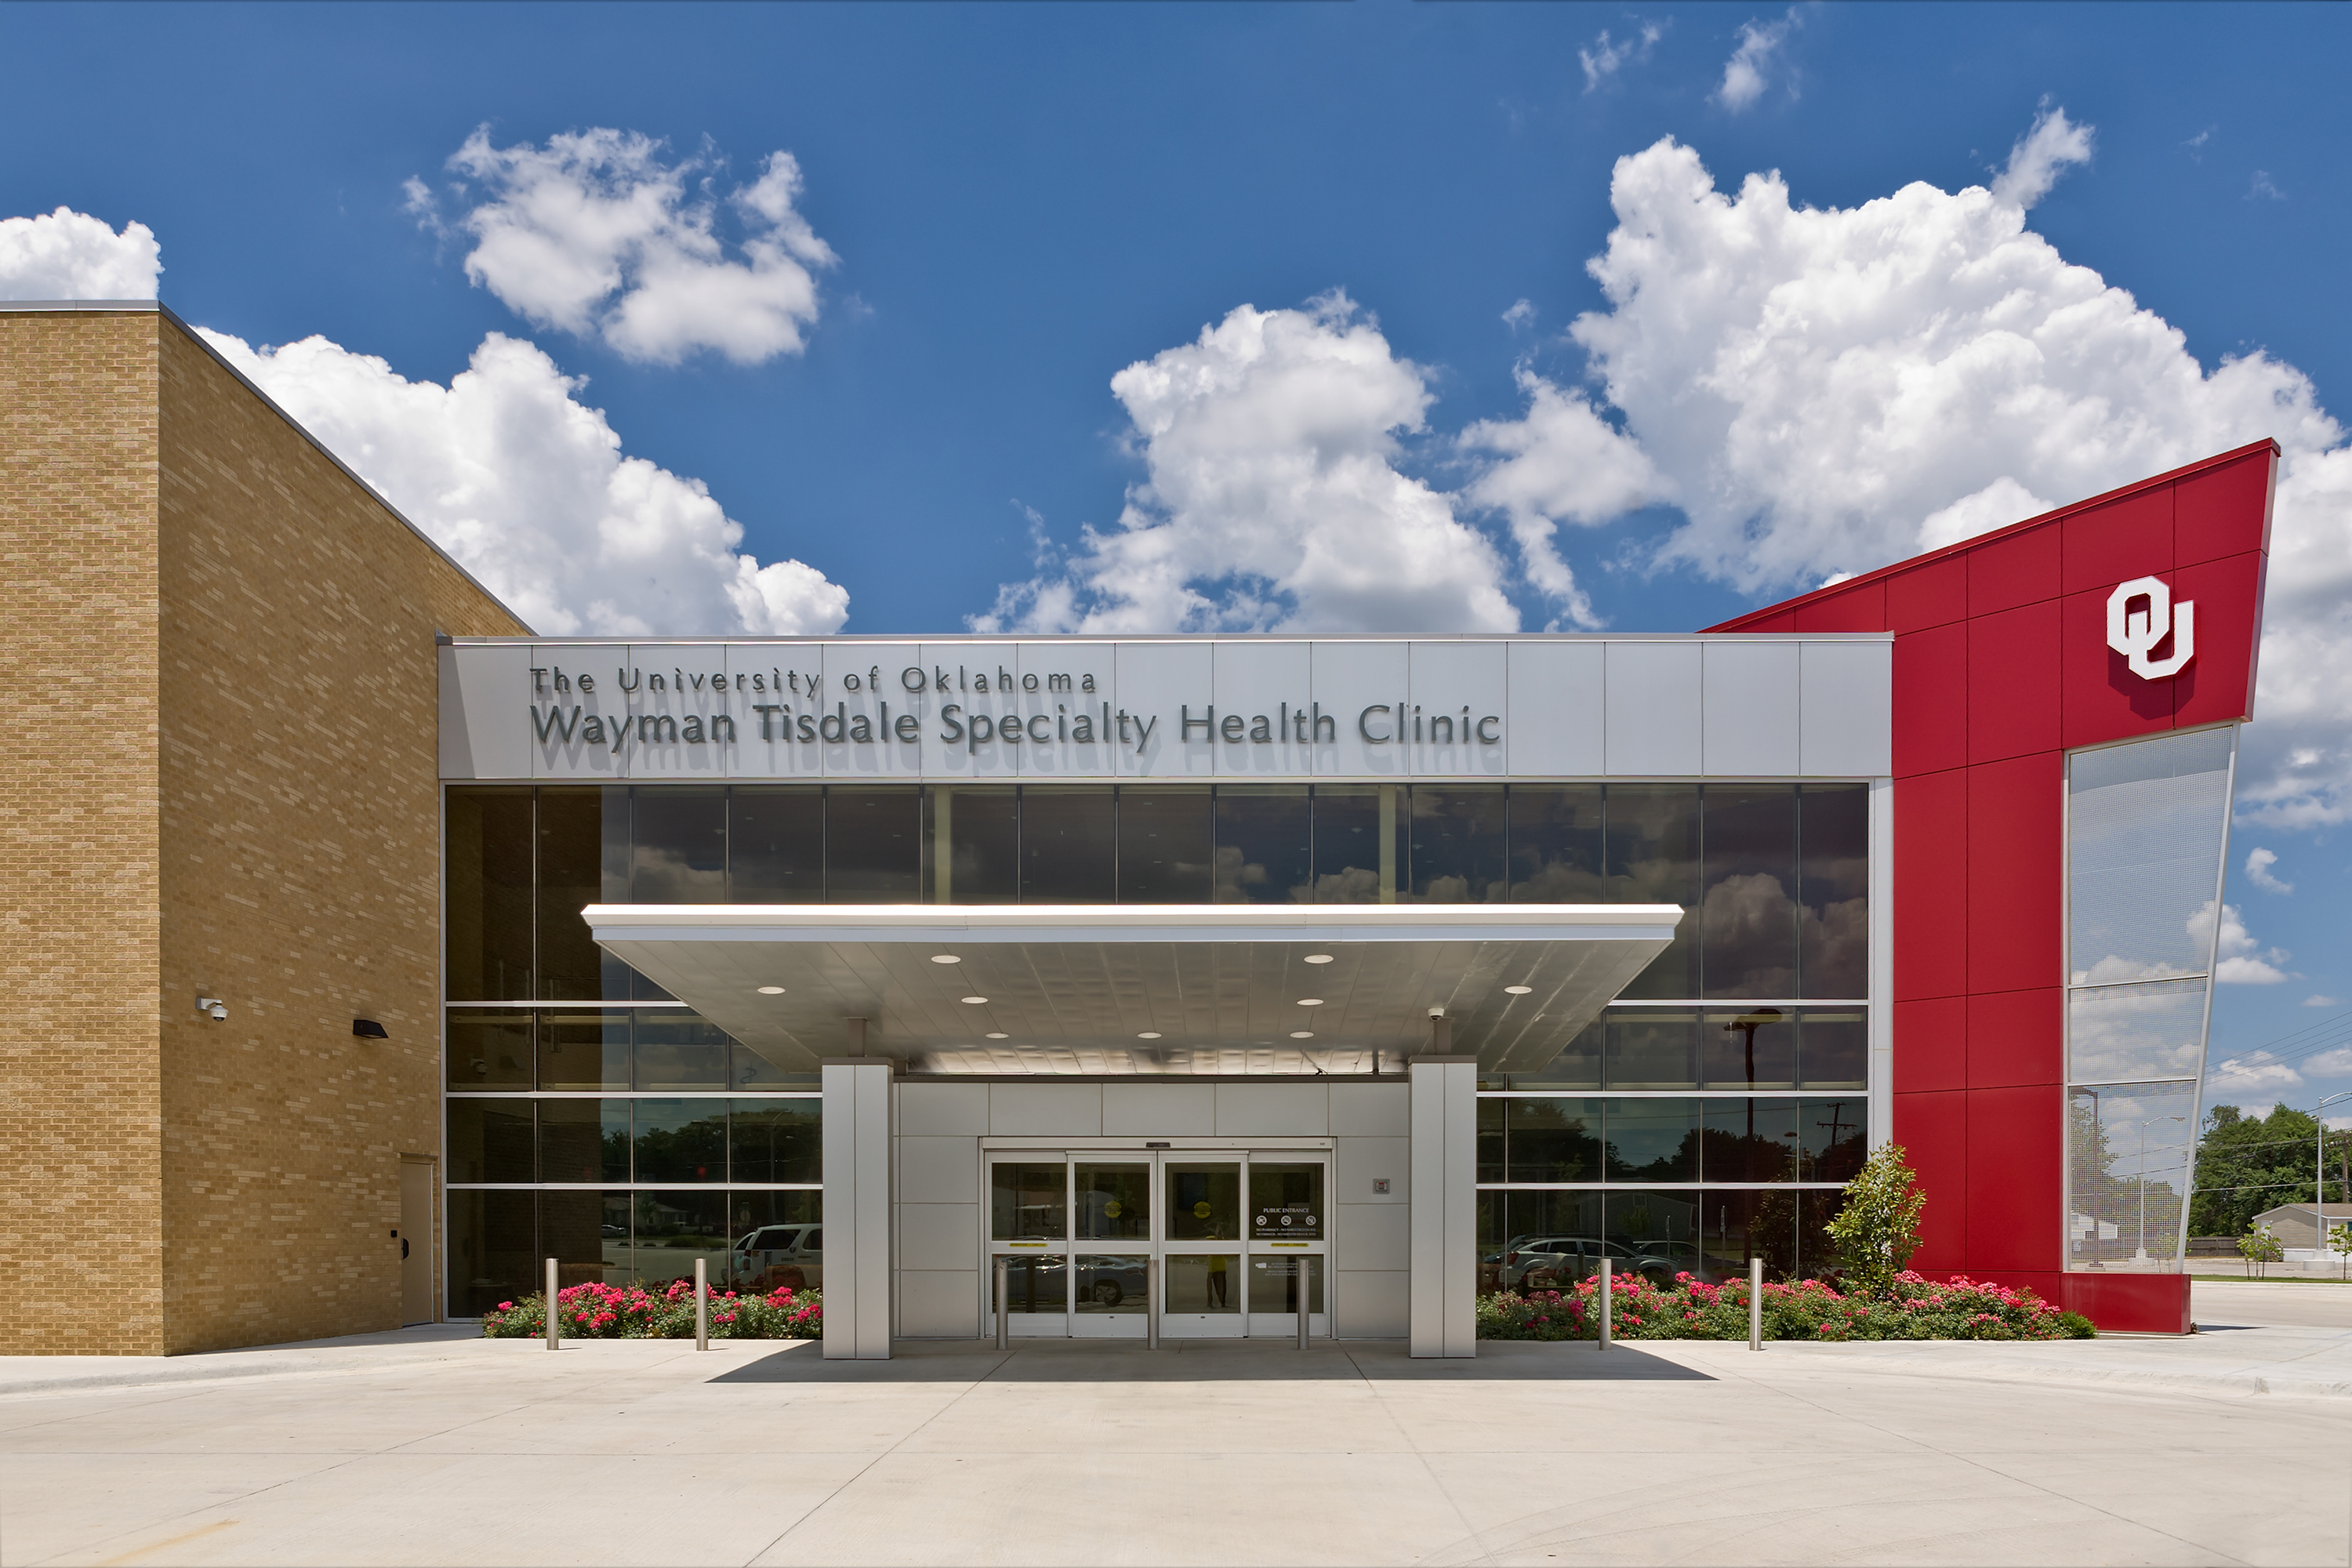 Wayman Tisdale Specialty Health Clinic Wallace Engineering